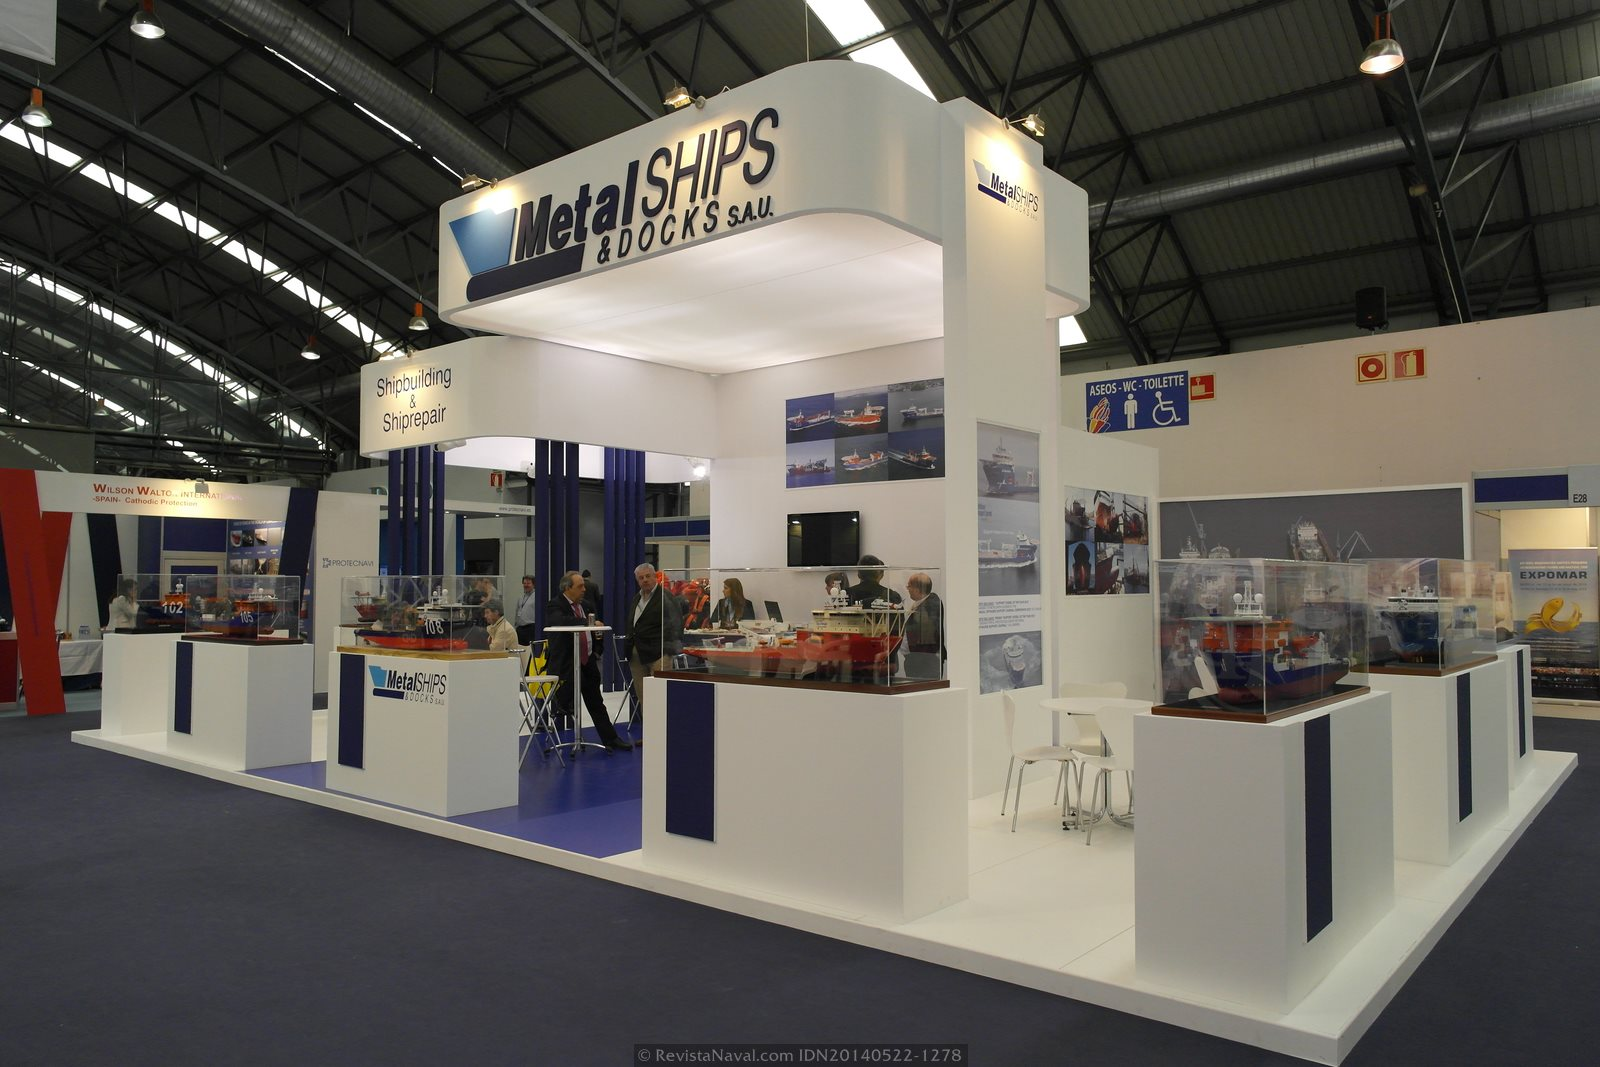 Estand de MetalShips & Docks (Foto: Revista Naval)